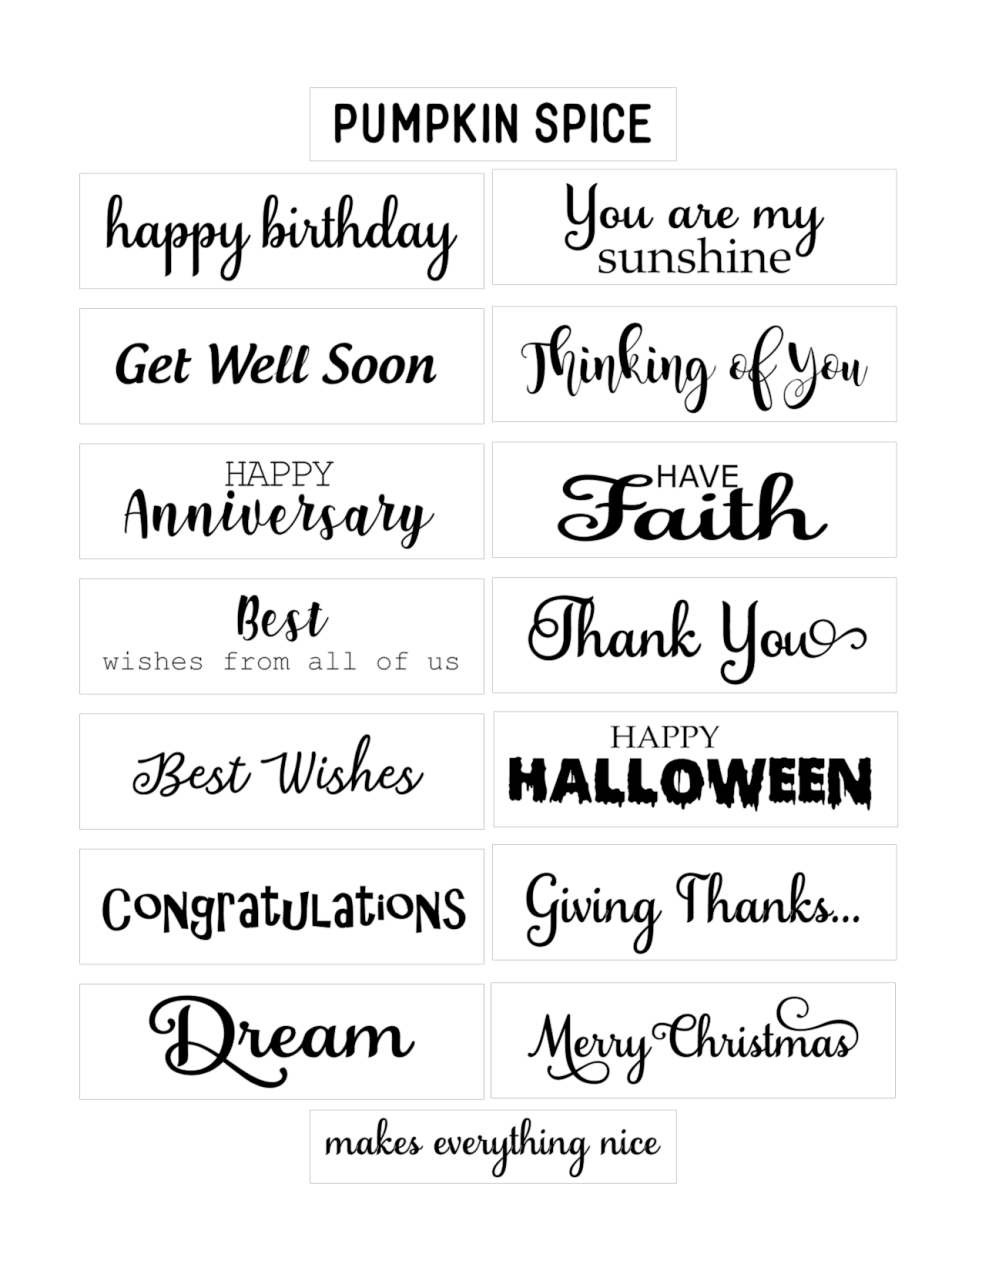 PattyAnne's Sentiment Labels